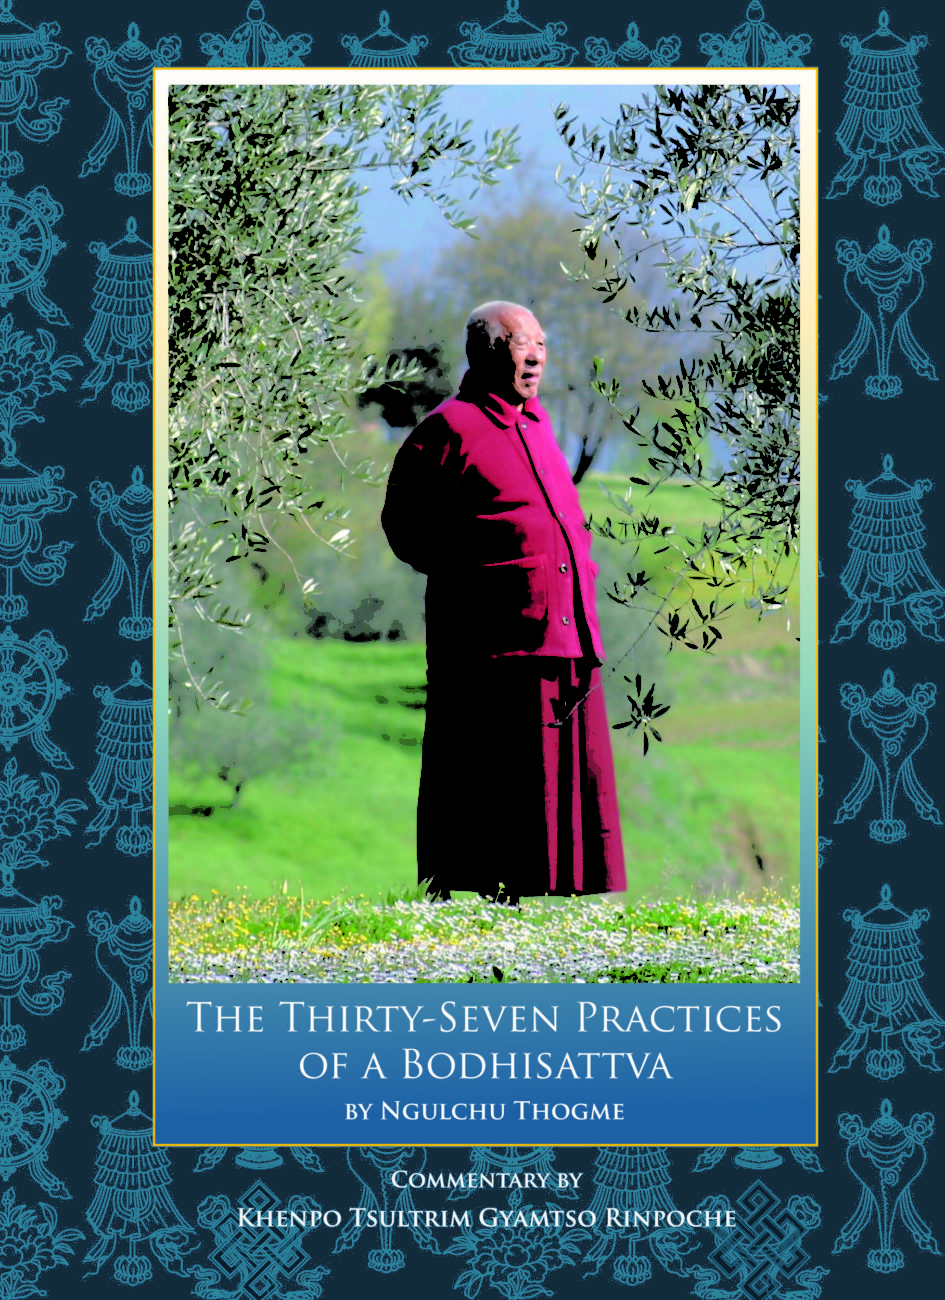 The Thirty-Seven Practices of a Bodhisattva